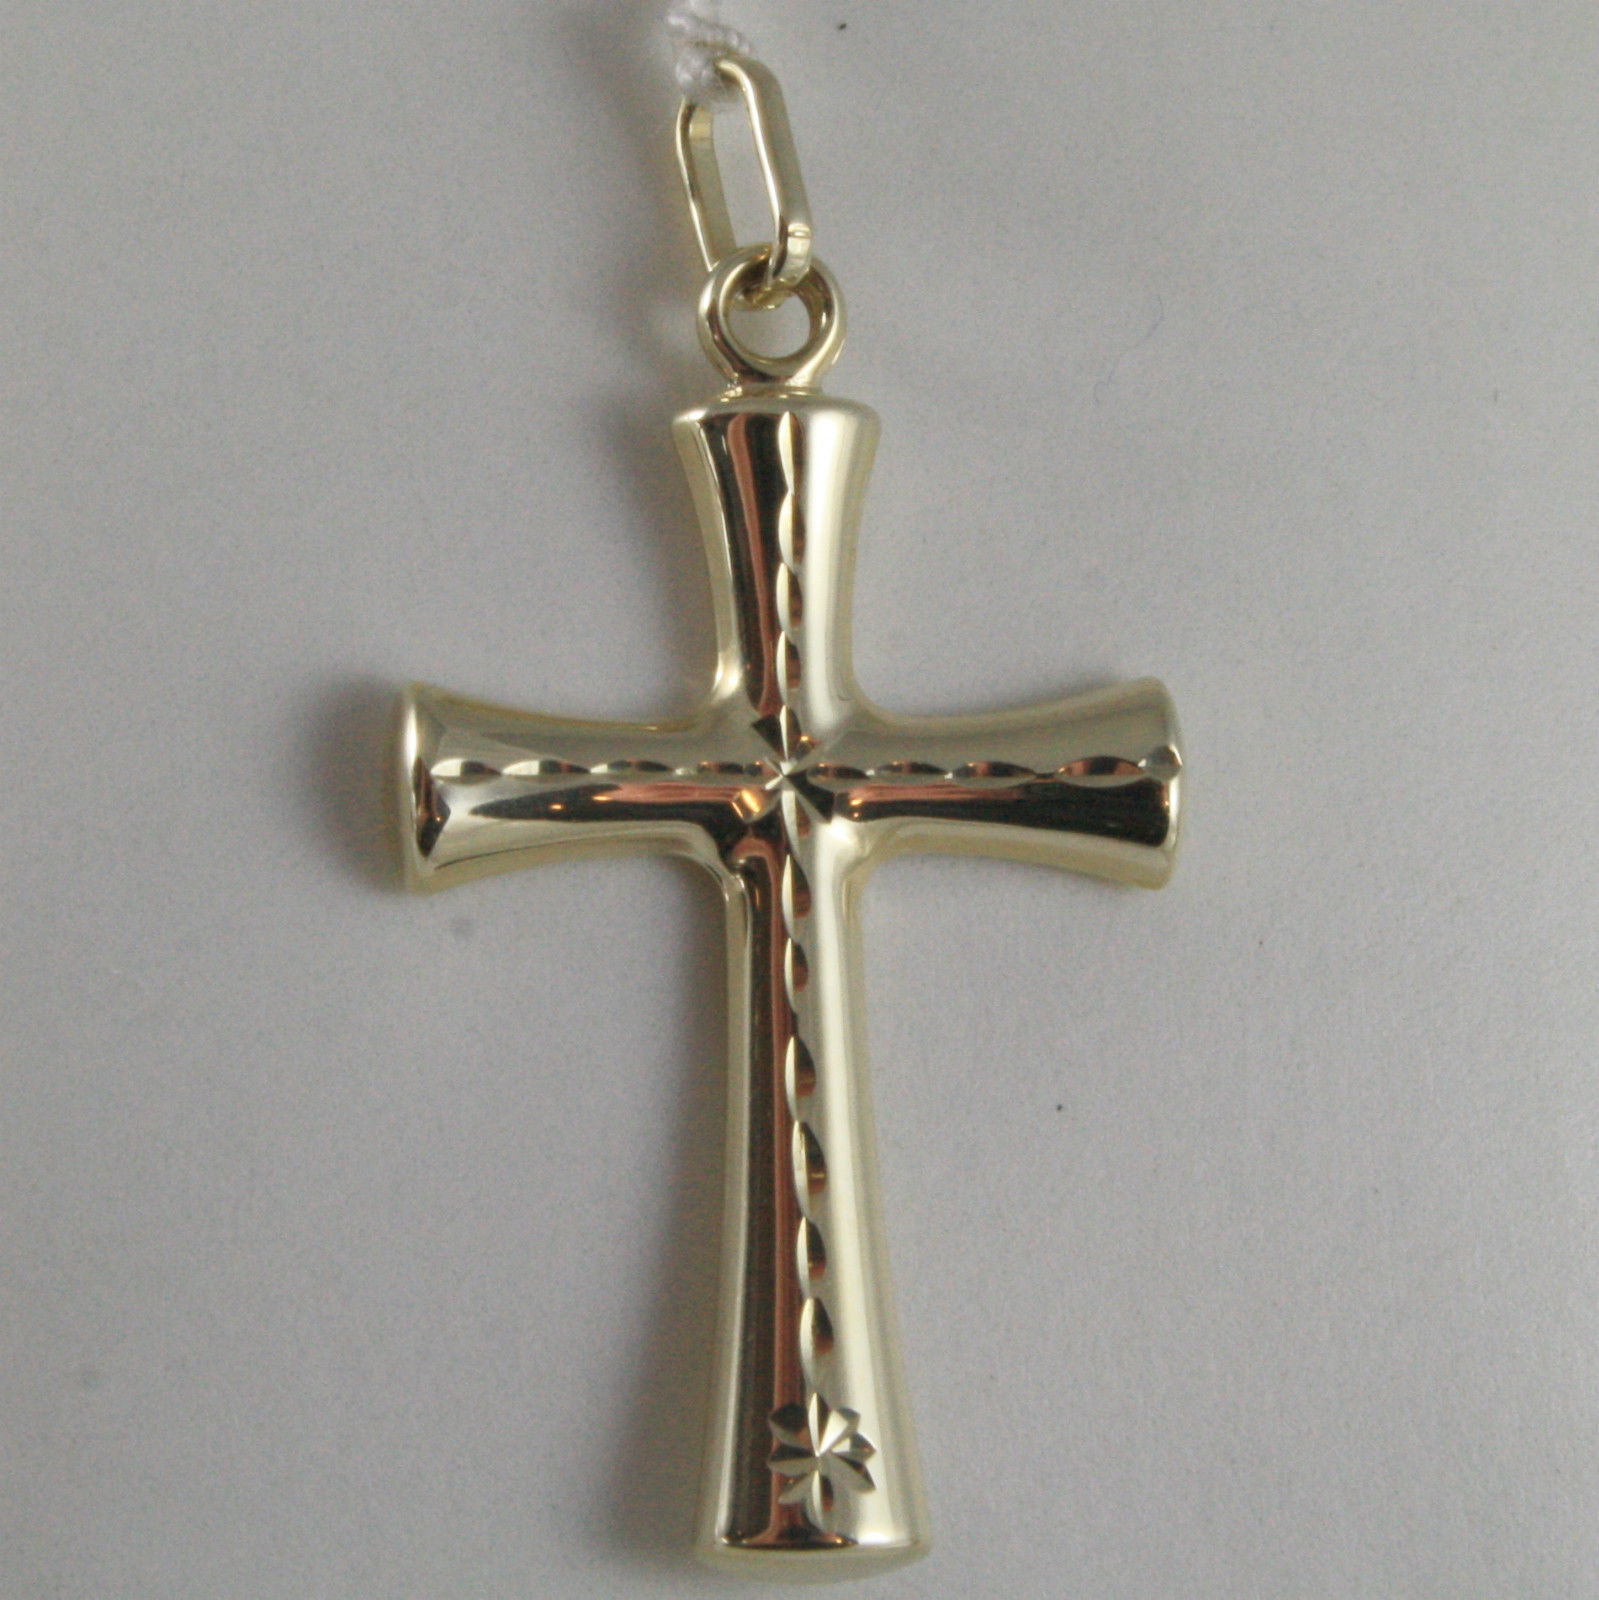 SOLID 9K YELLOW GOLD CROSS, STYLIZED, FINELY WORKED, MADE IN ITALY, 9KT